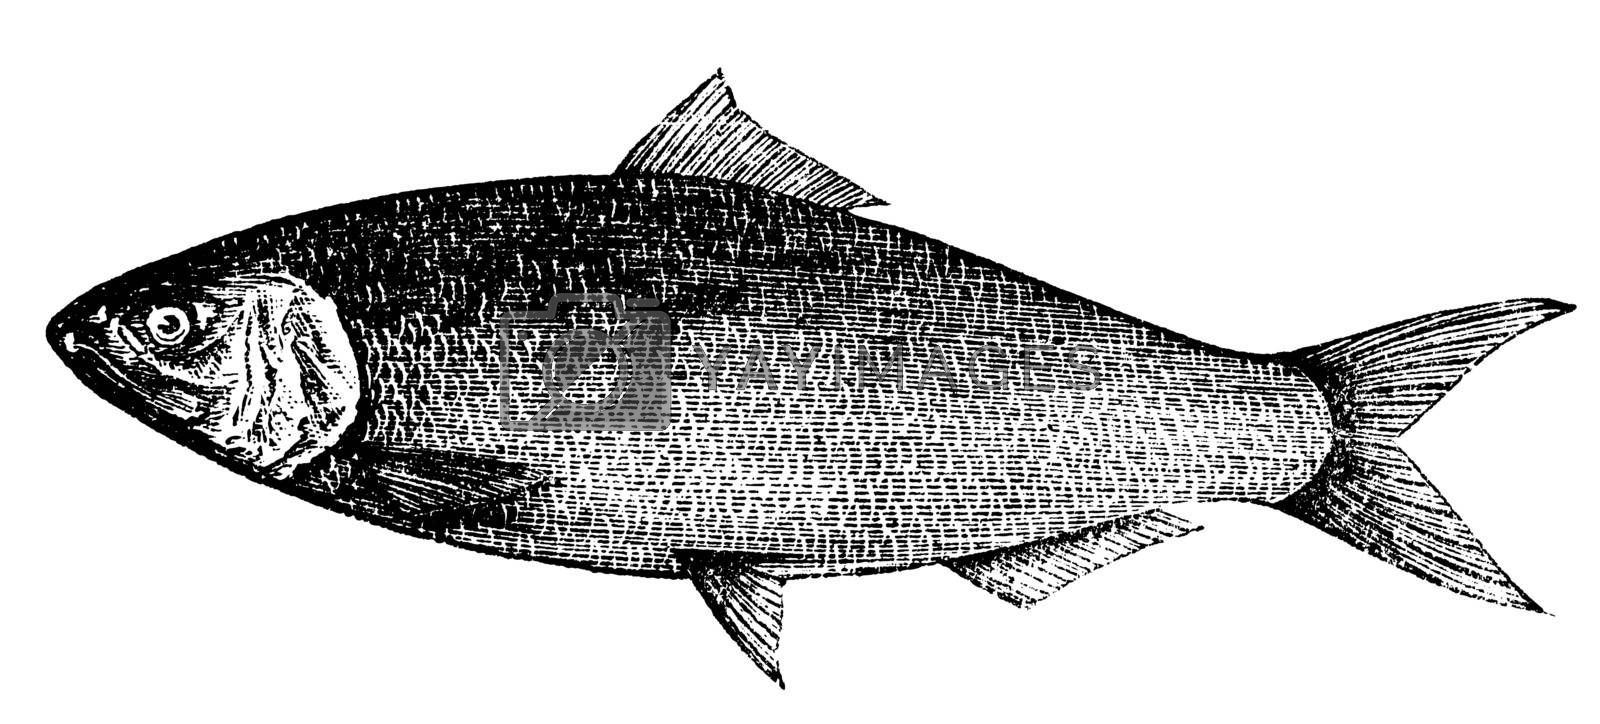 American Shad, Atlantic Shad, Alosa praestabilis or alosa sapidissima vintage engraving. Old engraved illustration of an american shad fish, in vector, isolated against a white background.